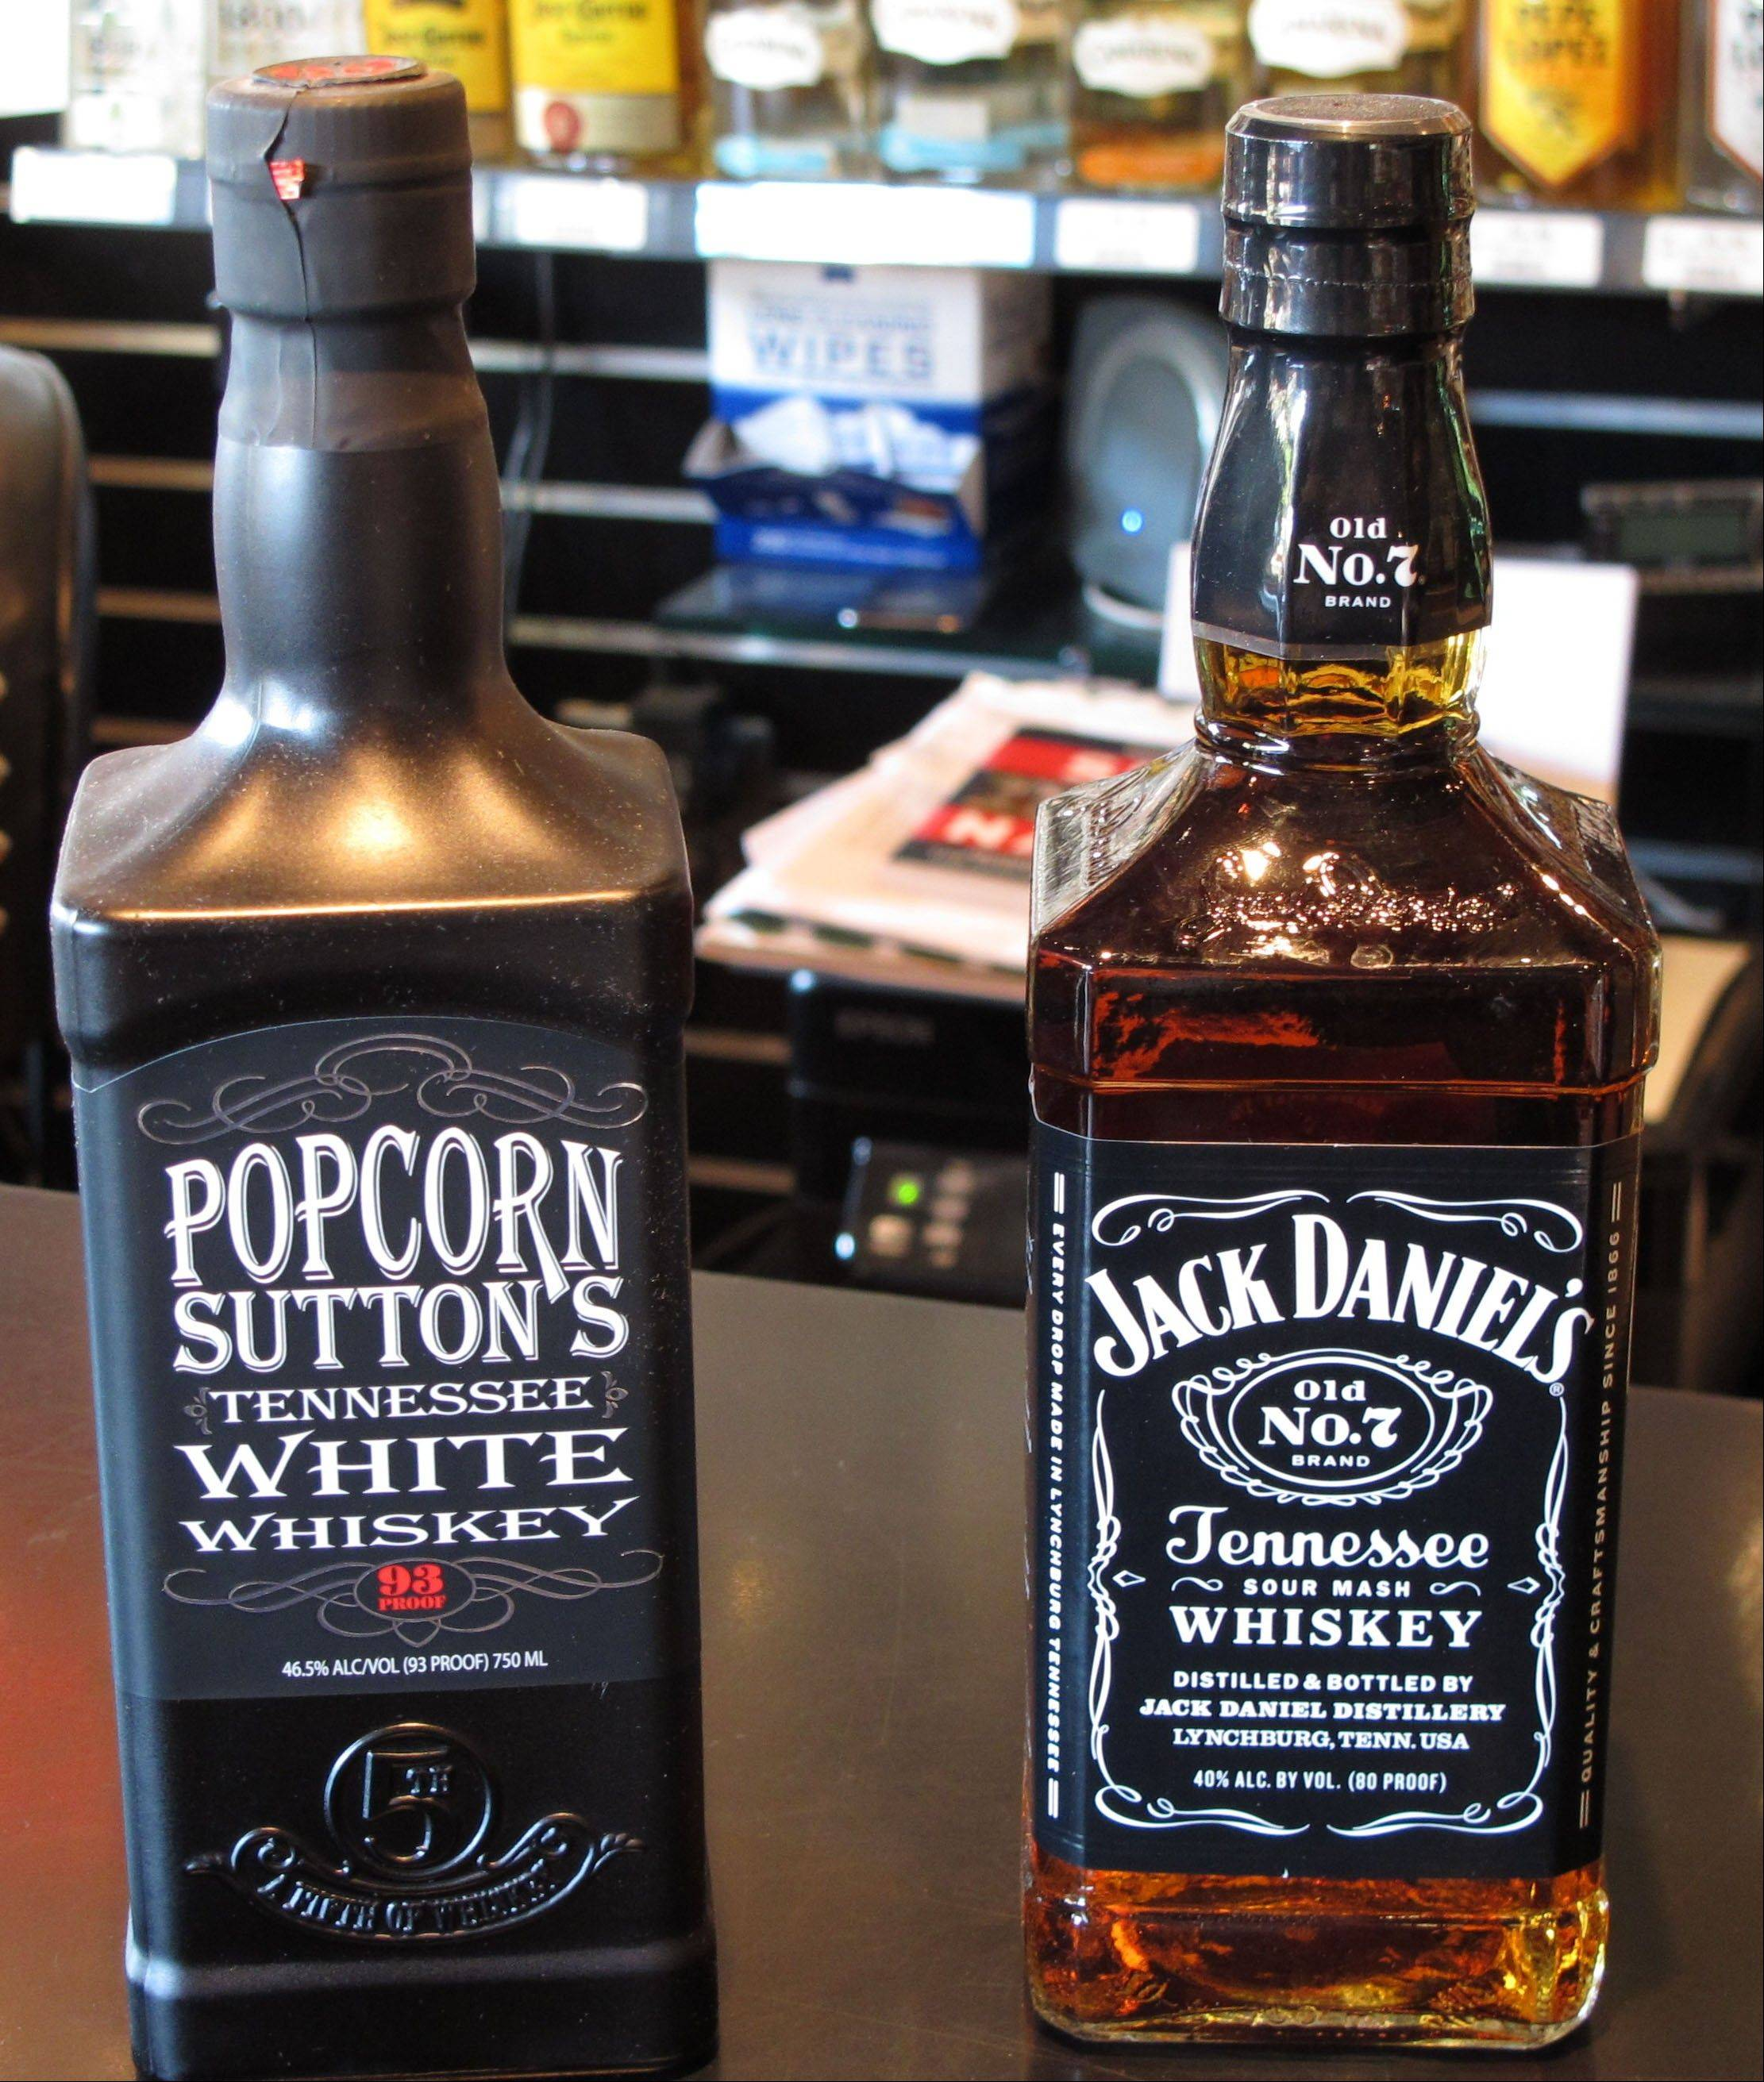 Bottles of Popcorn Sutton's Tennessee White Whiskey and Jack Daniel's Tennessee whiskey sit side by side at a Louisville, Ky., liquor store.